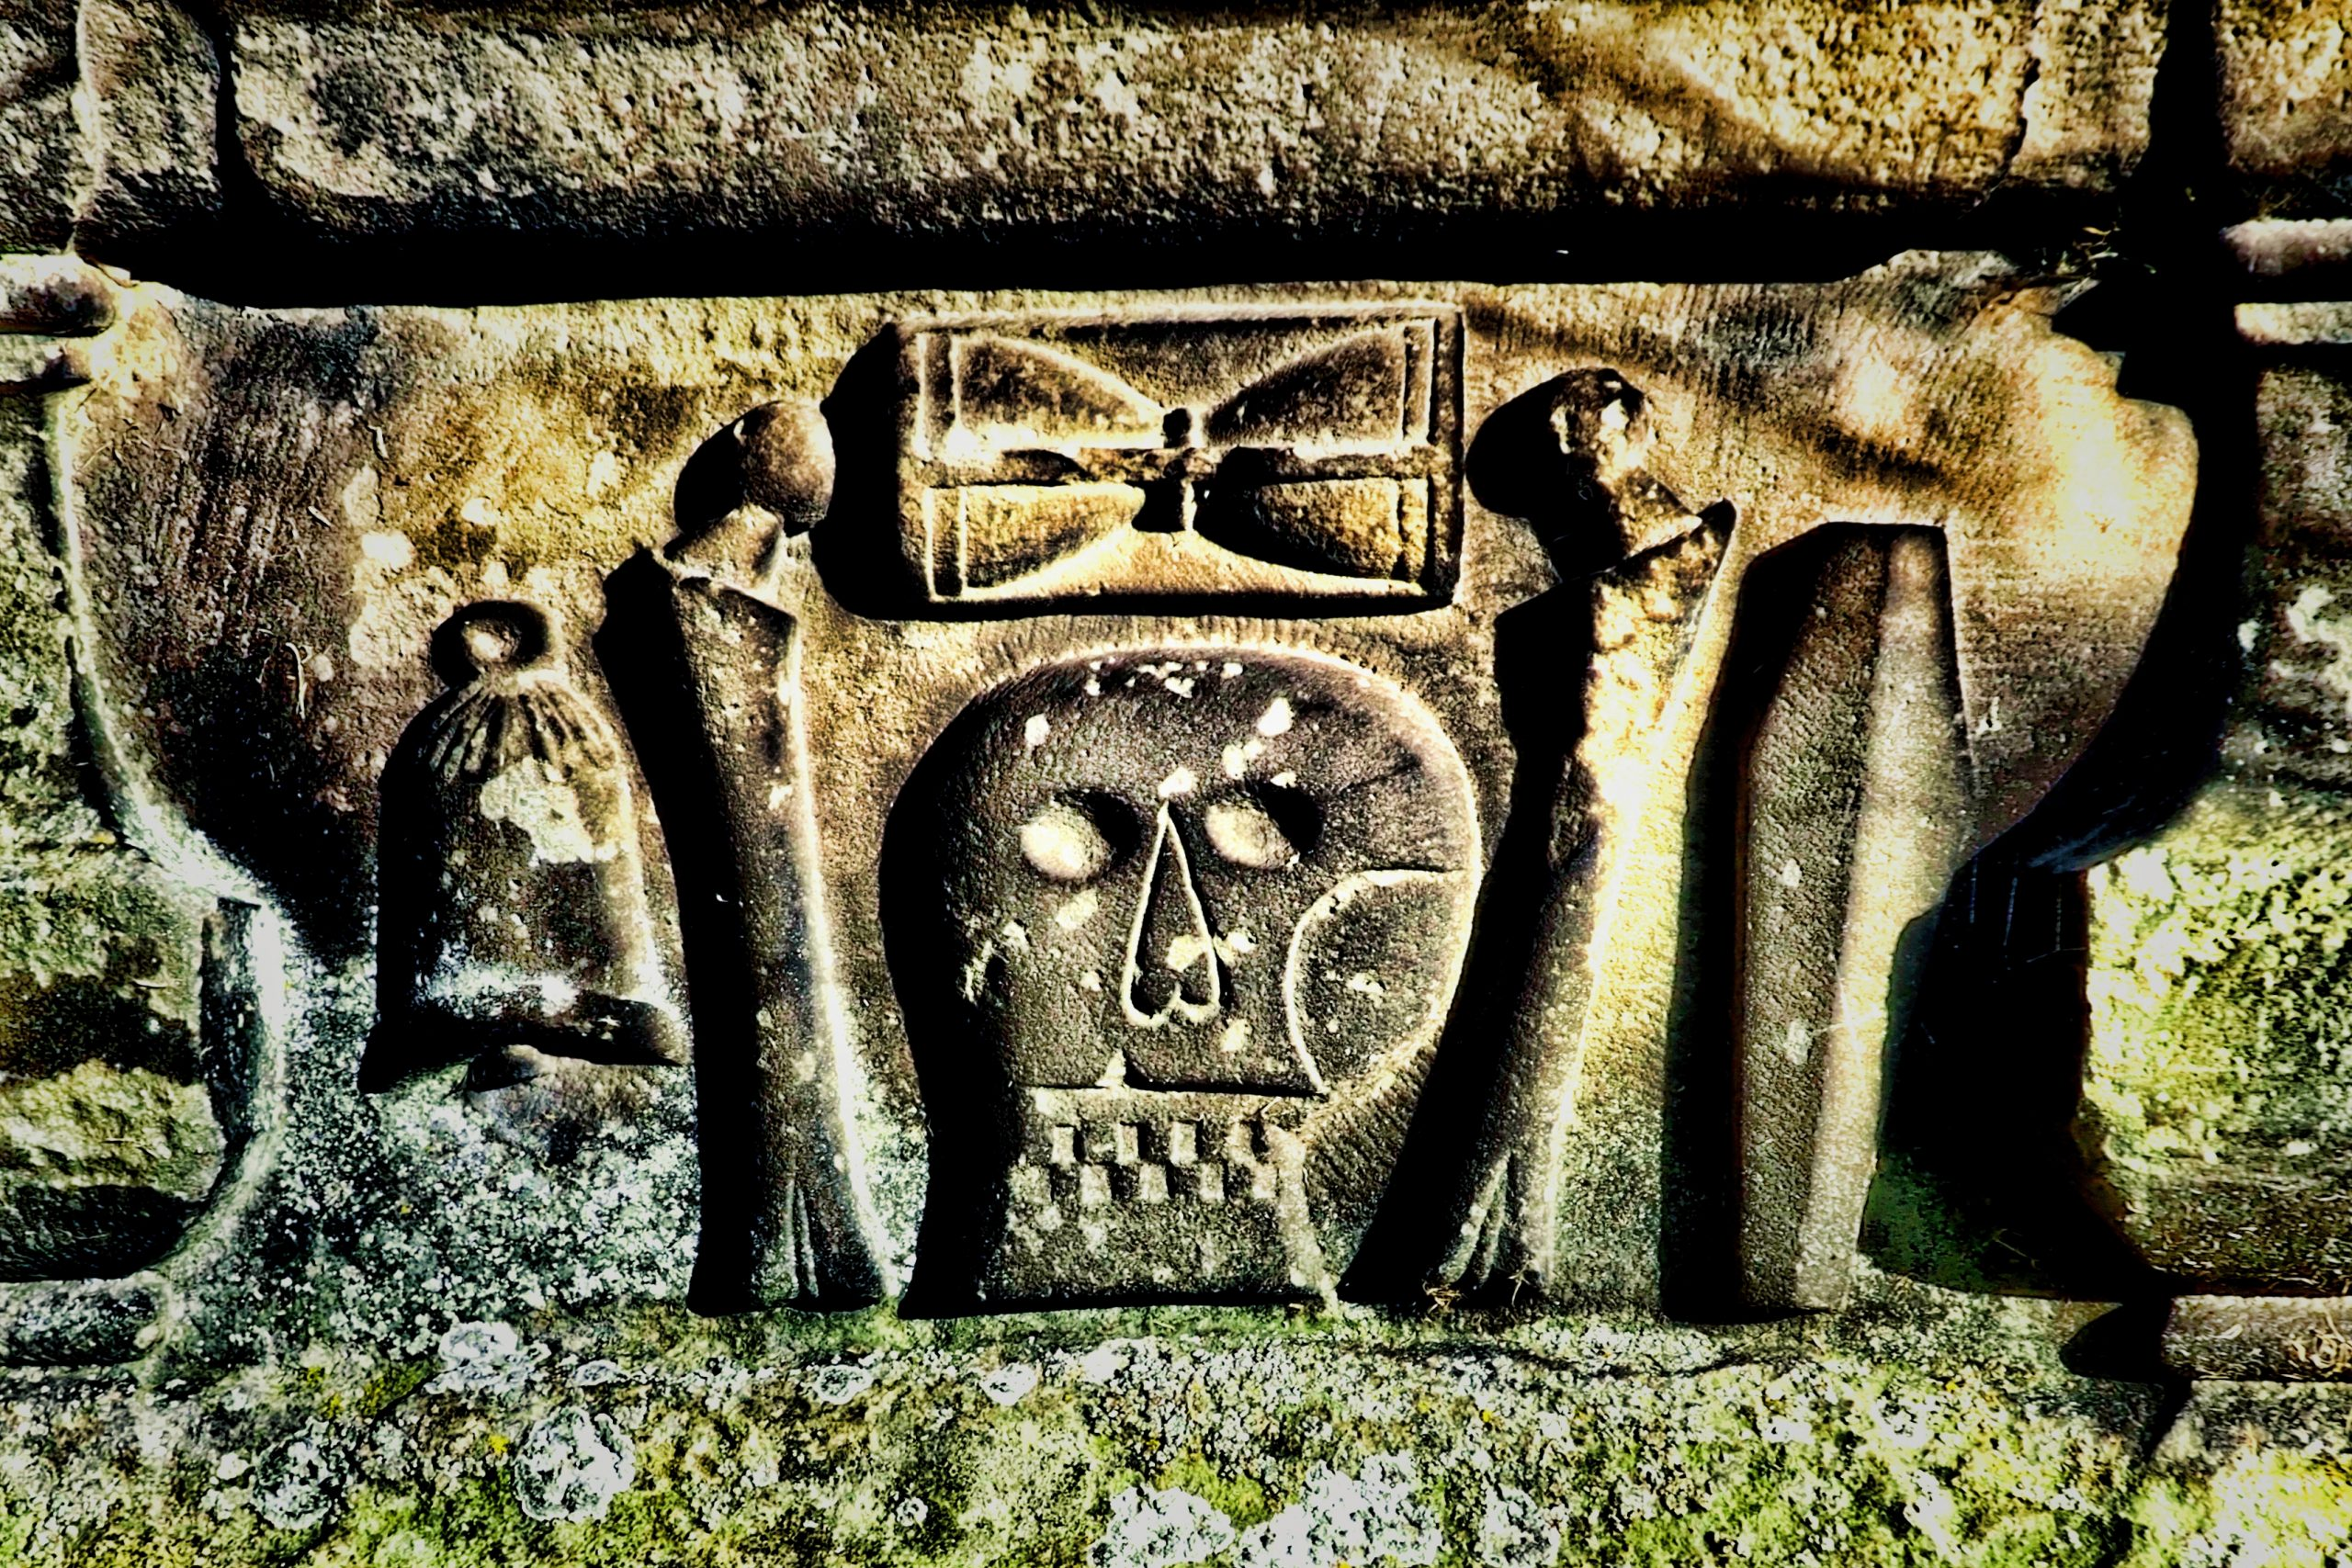 Why Was the Skull and Crossbones Carved On So Many Old Scottish Gravestones?